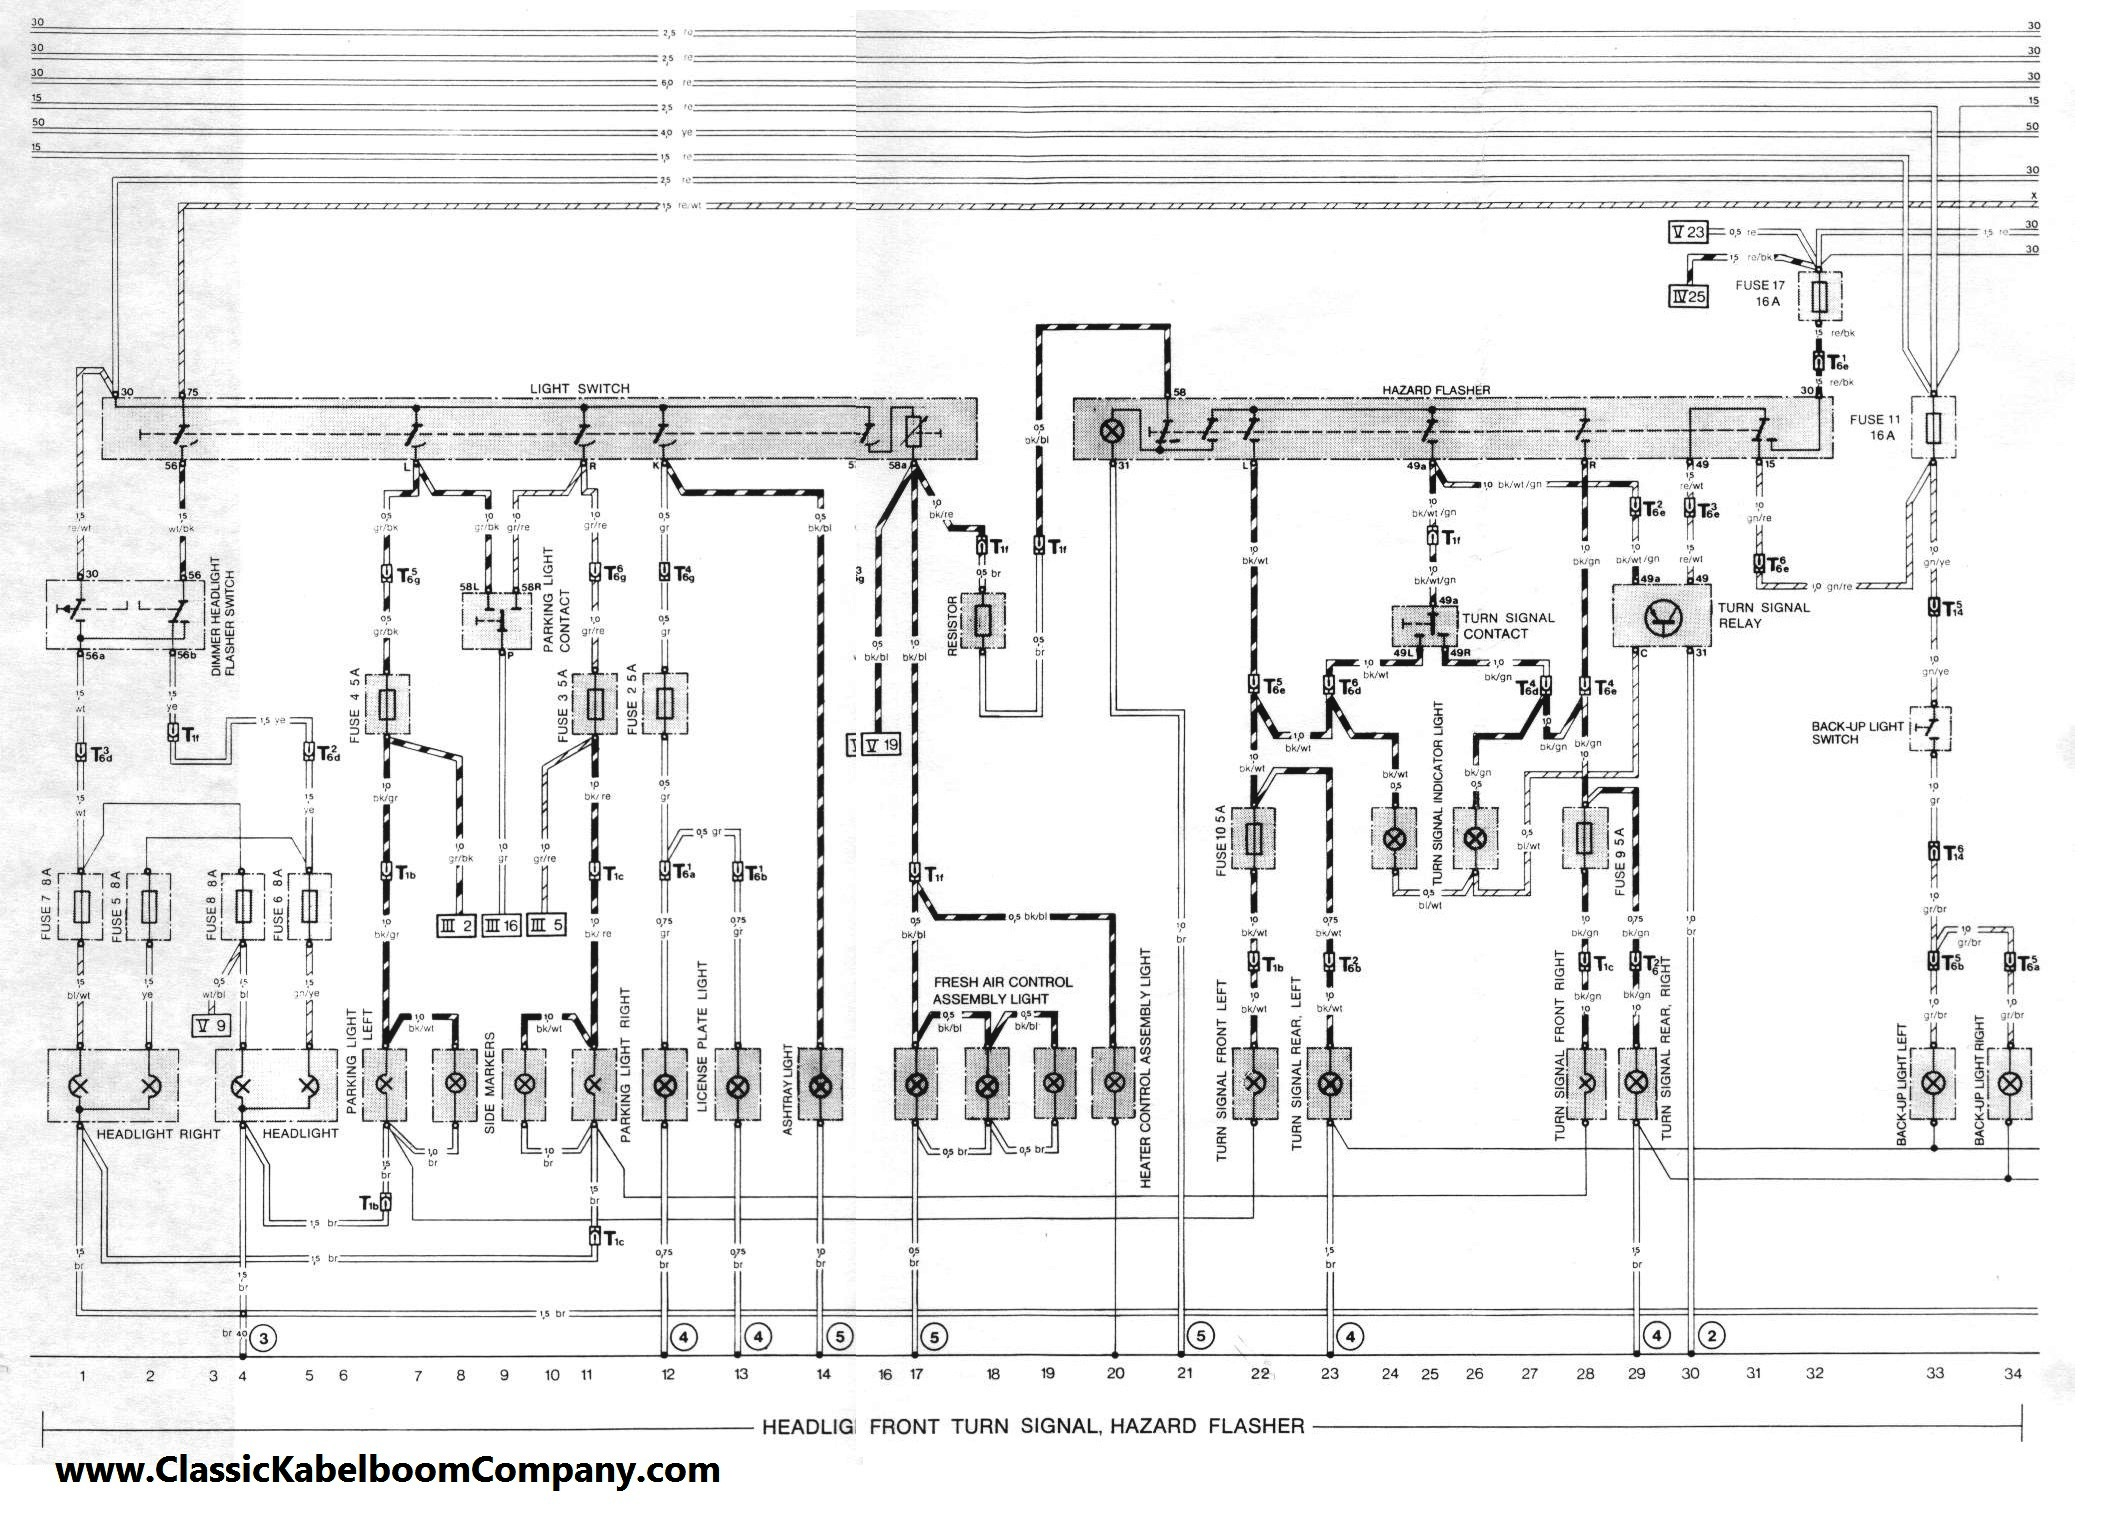 Webasto wiring diagram kentoro com webasto wiring diagram kentoro com ness 5000 wiring diagram patent us5184050 sunroof motor with roof lid